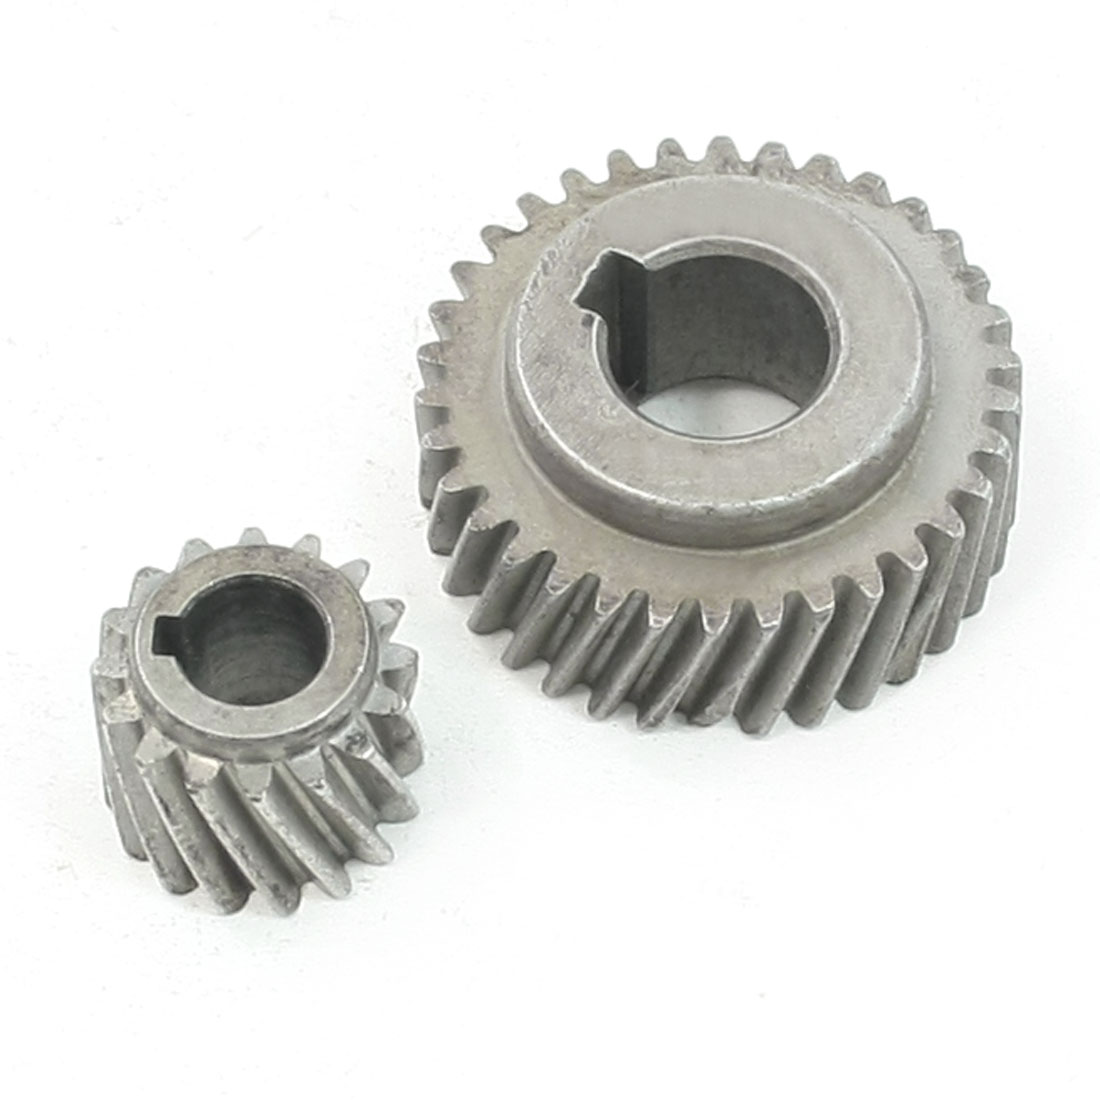 Electric Marble Cutter Helical Gear Pinion Set Replacement for Bosch 110